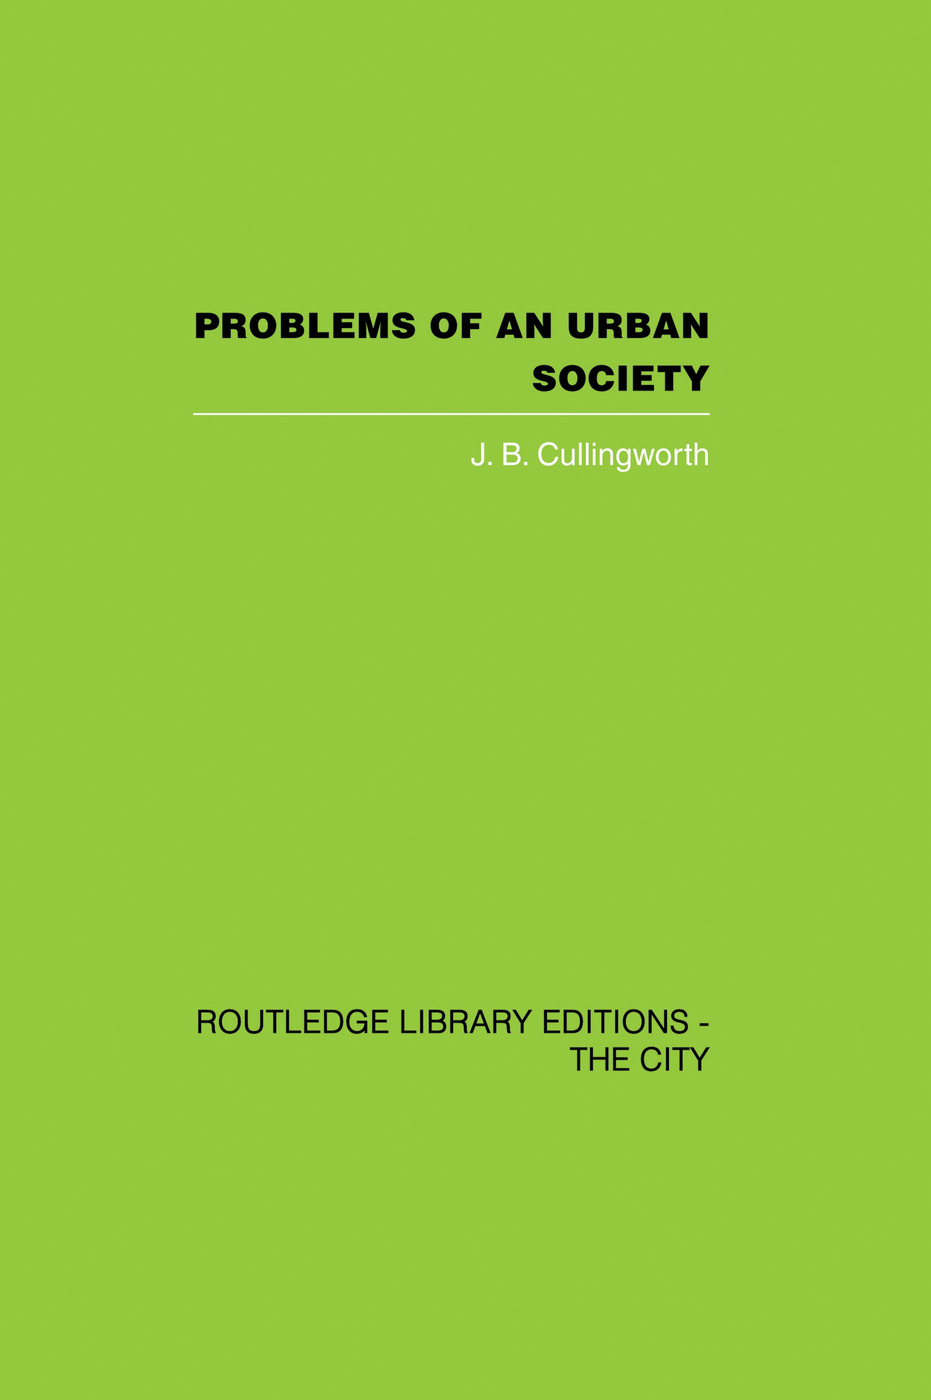 Problems of an Urban Society